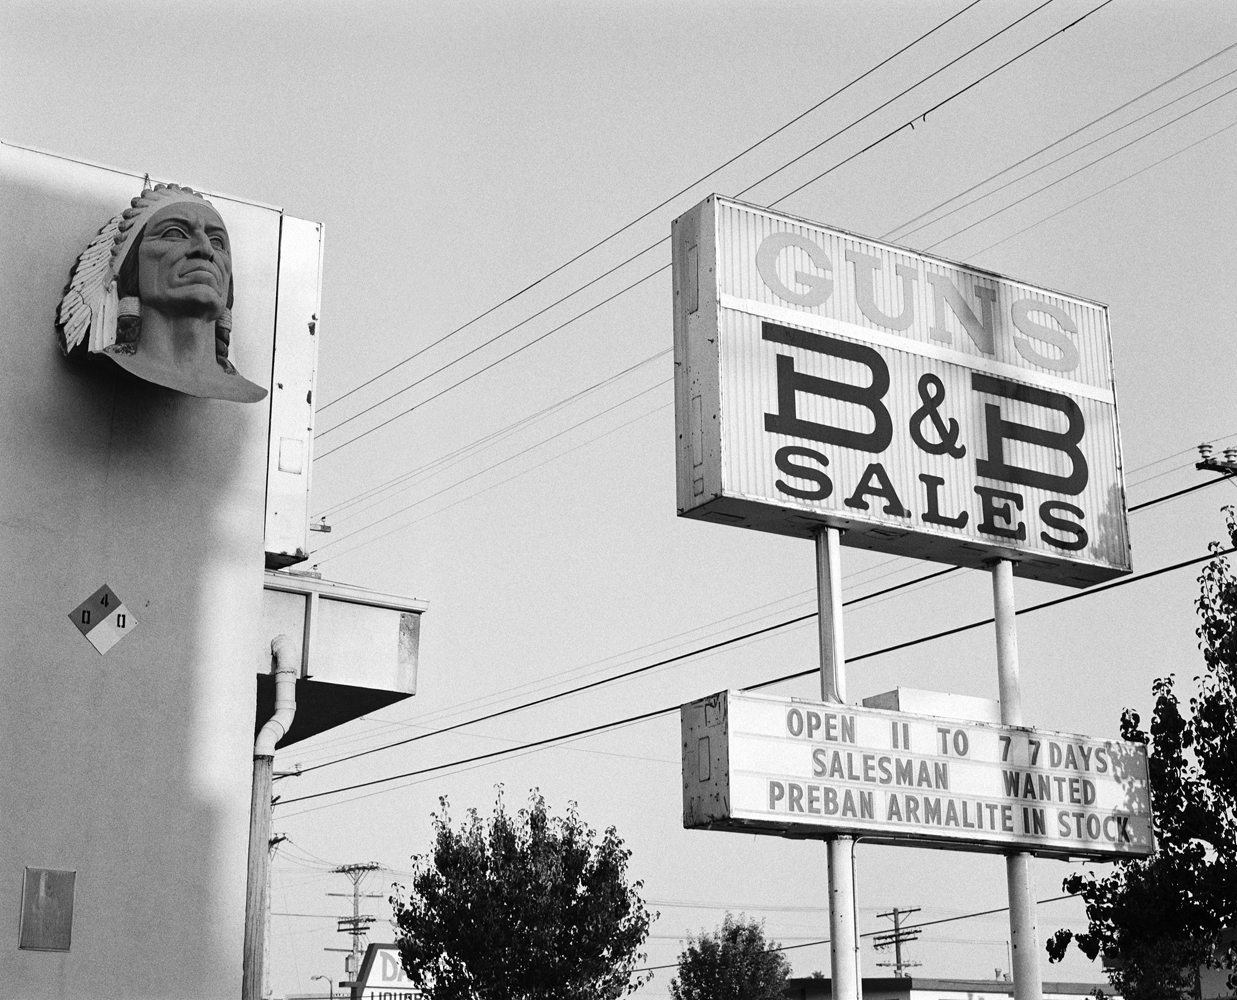 A sign advertising pre-ban Armalite assault-style weapons at B&B's gun store in Los Angeles. B&B's sales increased following the widely-publicized North Hollywood shootout, where Los Angeles police officers were outgunned by two heavily armed bank robbers protected by body-armour. A group of LAPD officers rushed from the siege to B&B's gunstore, borrowing M-16 assault rifles and pump-action shotguns with hundreds of rounds of ammunition before returning to the crime scene and killing the besieged robbers with the unofficial firearms.